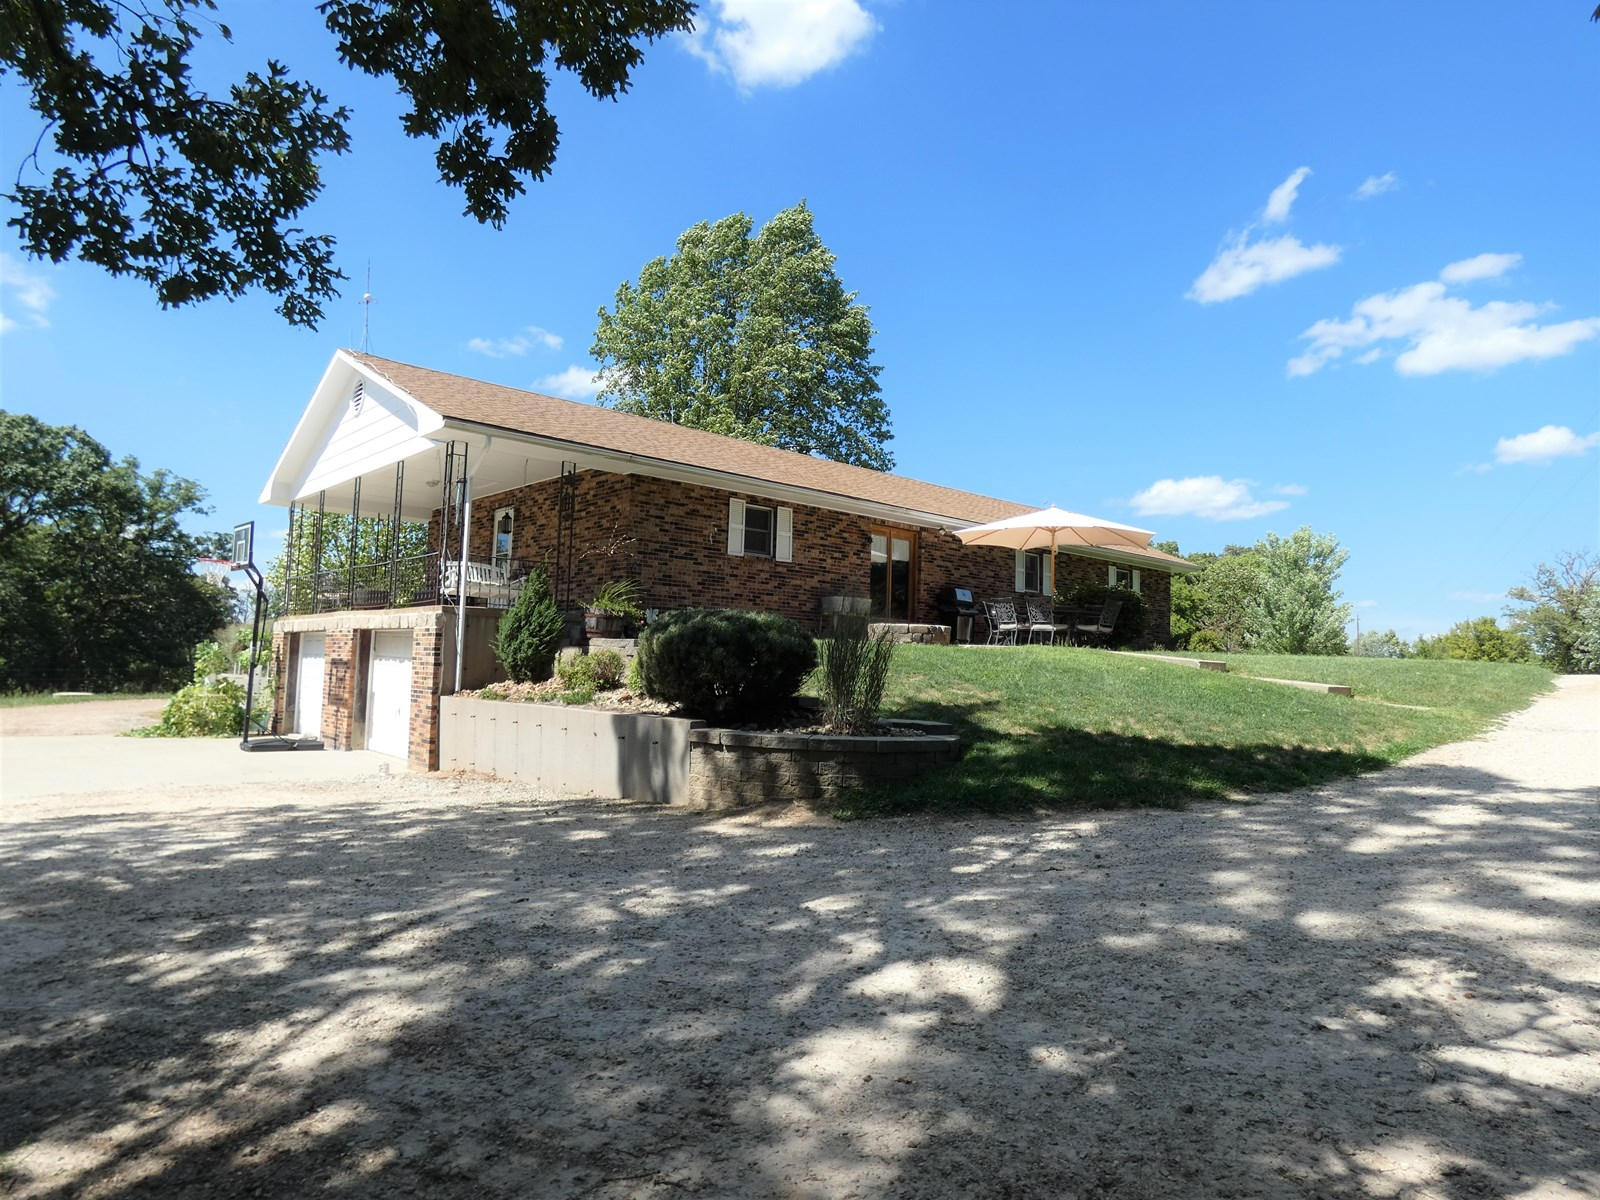 Country Home & Acreage For Sale in Hermann, Missouri